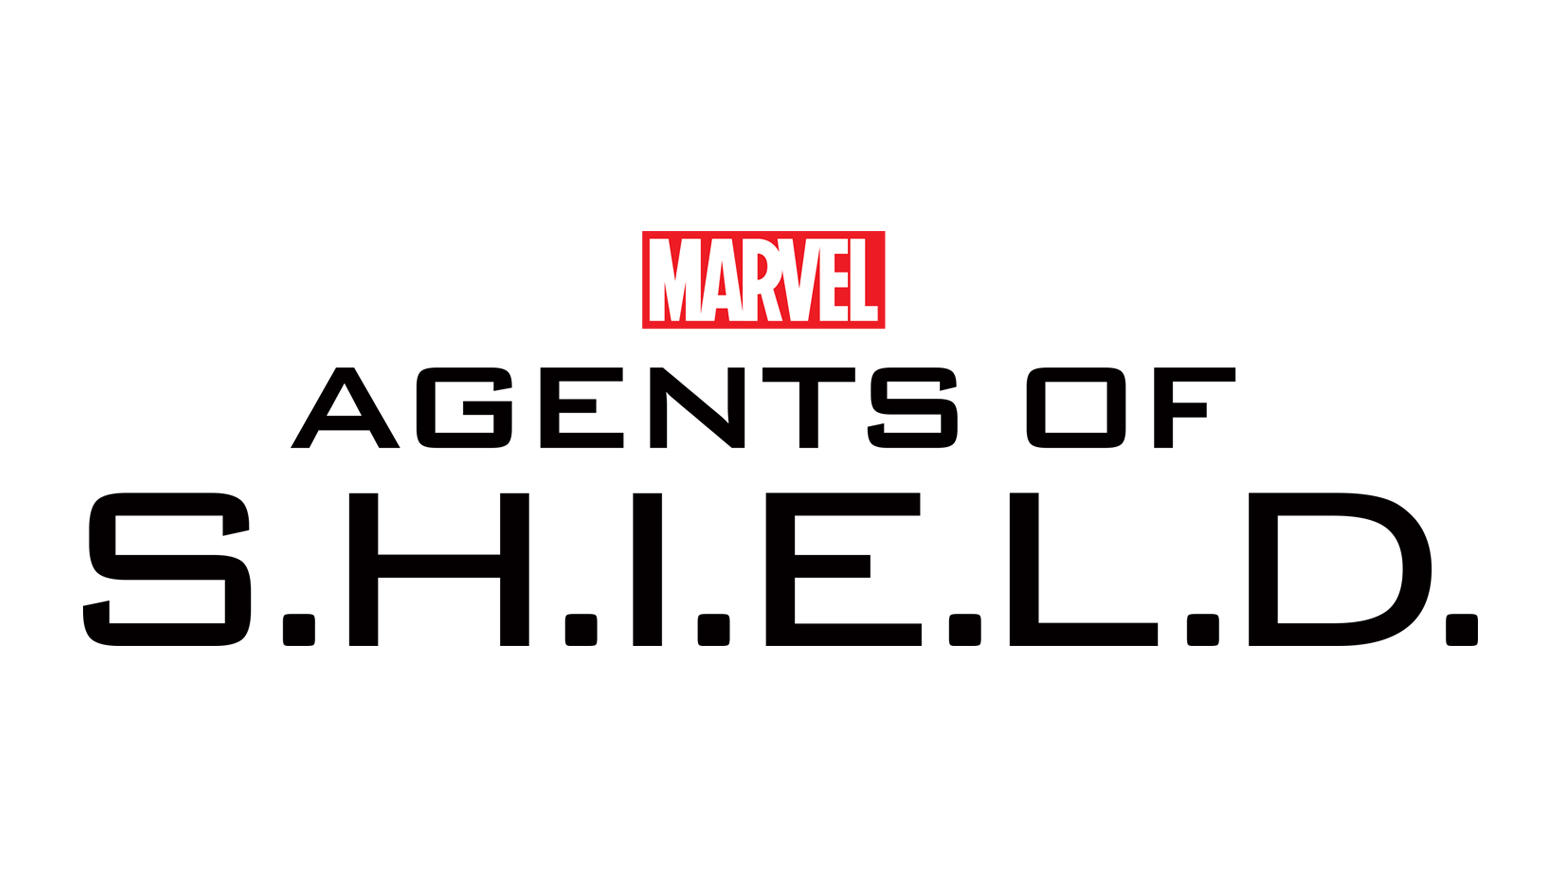 'Agents of SHIELD' Renewed for Season 7